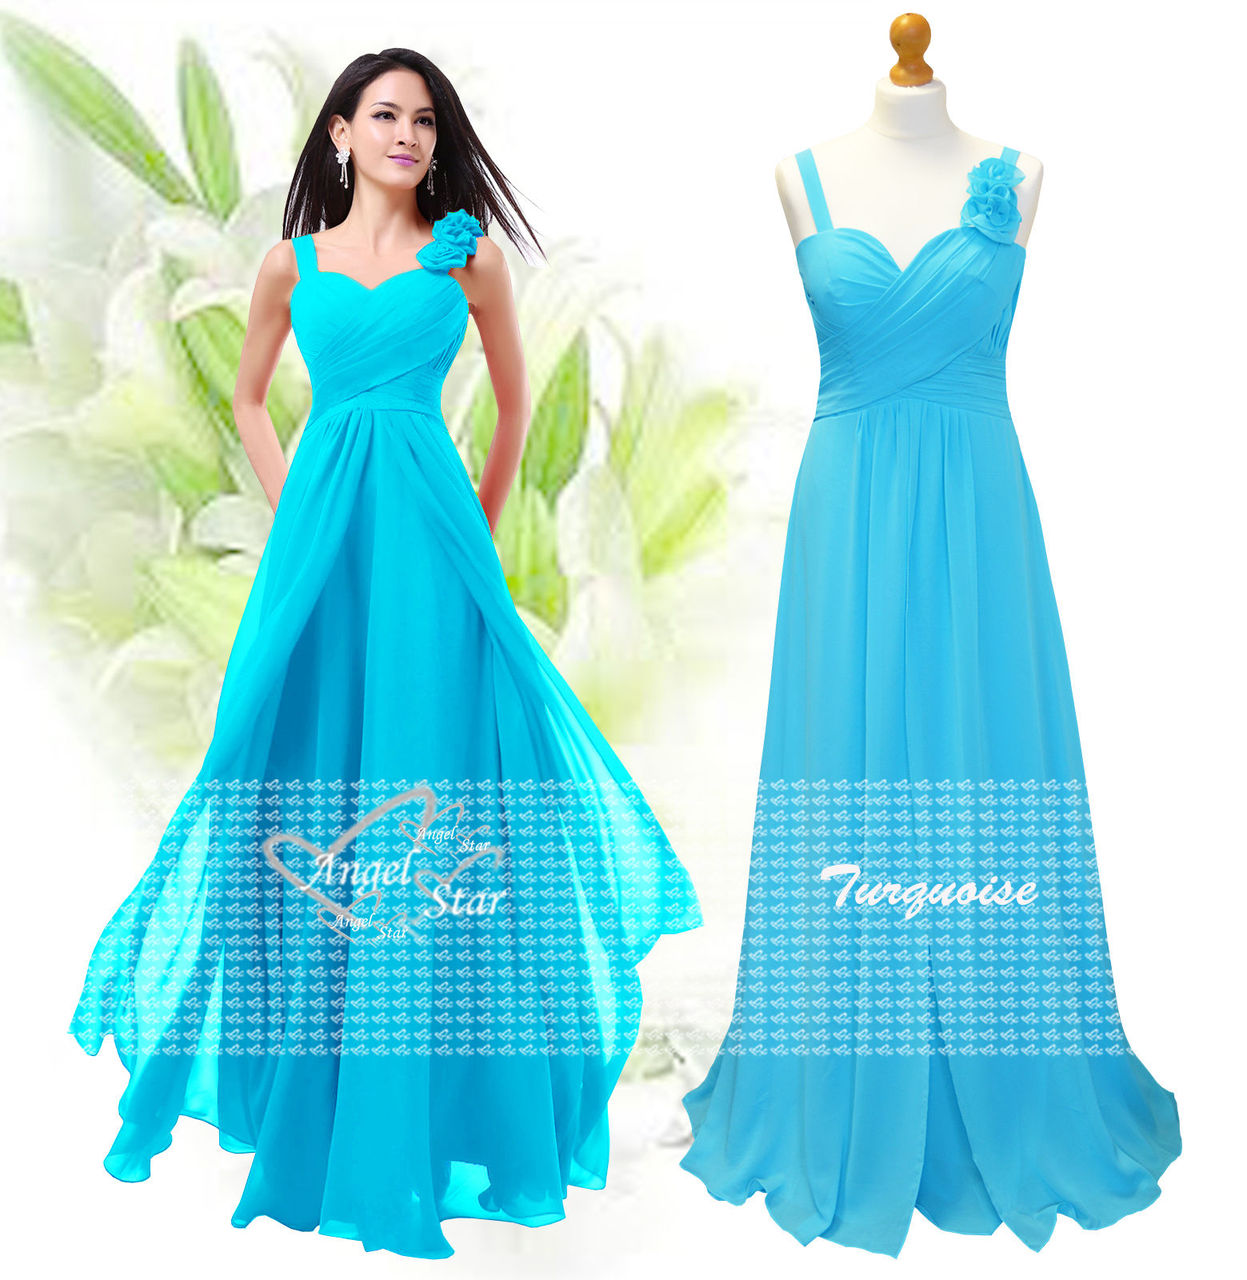 ba157ab2e2e New Formal Long Evening Ball Gown Party Prom Bridesmaid Dress Size 6 ...